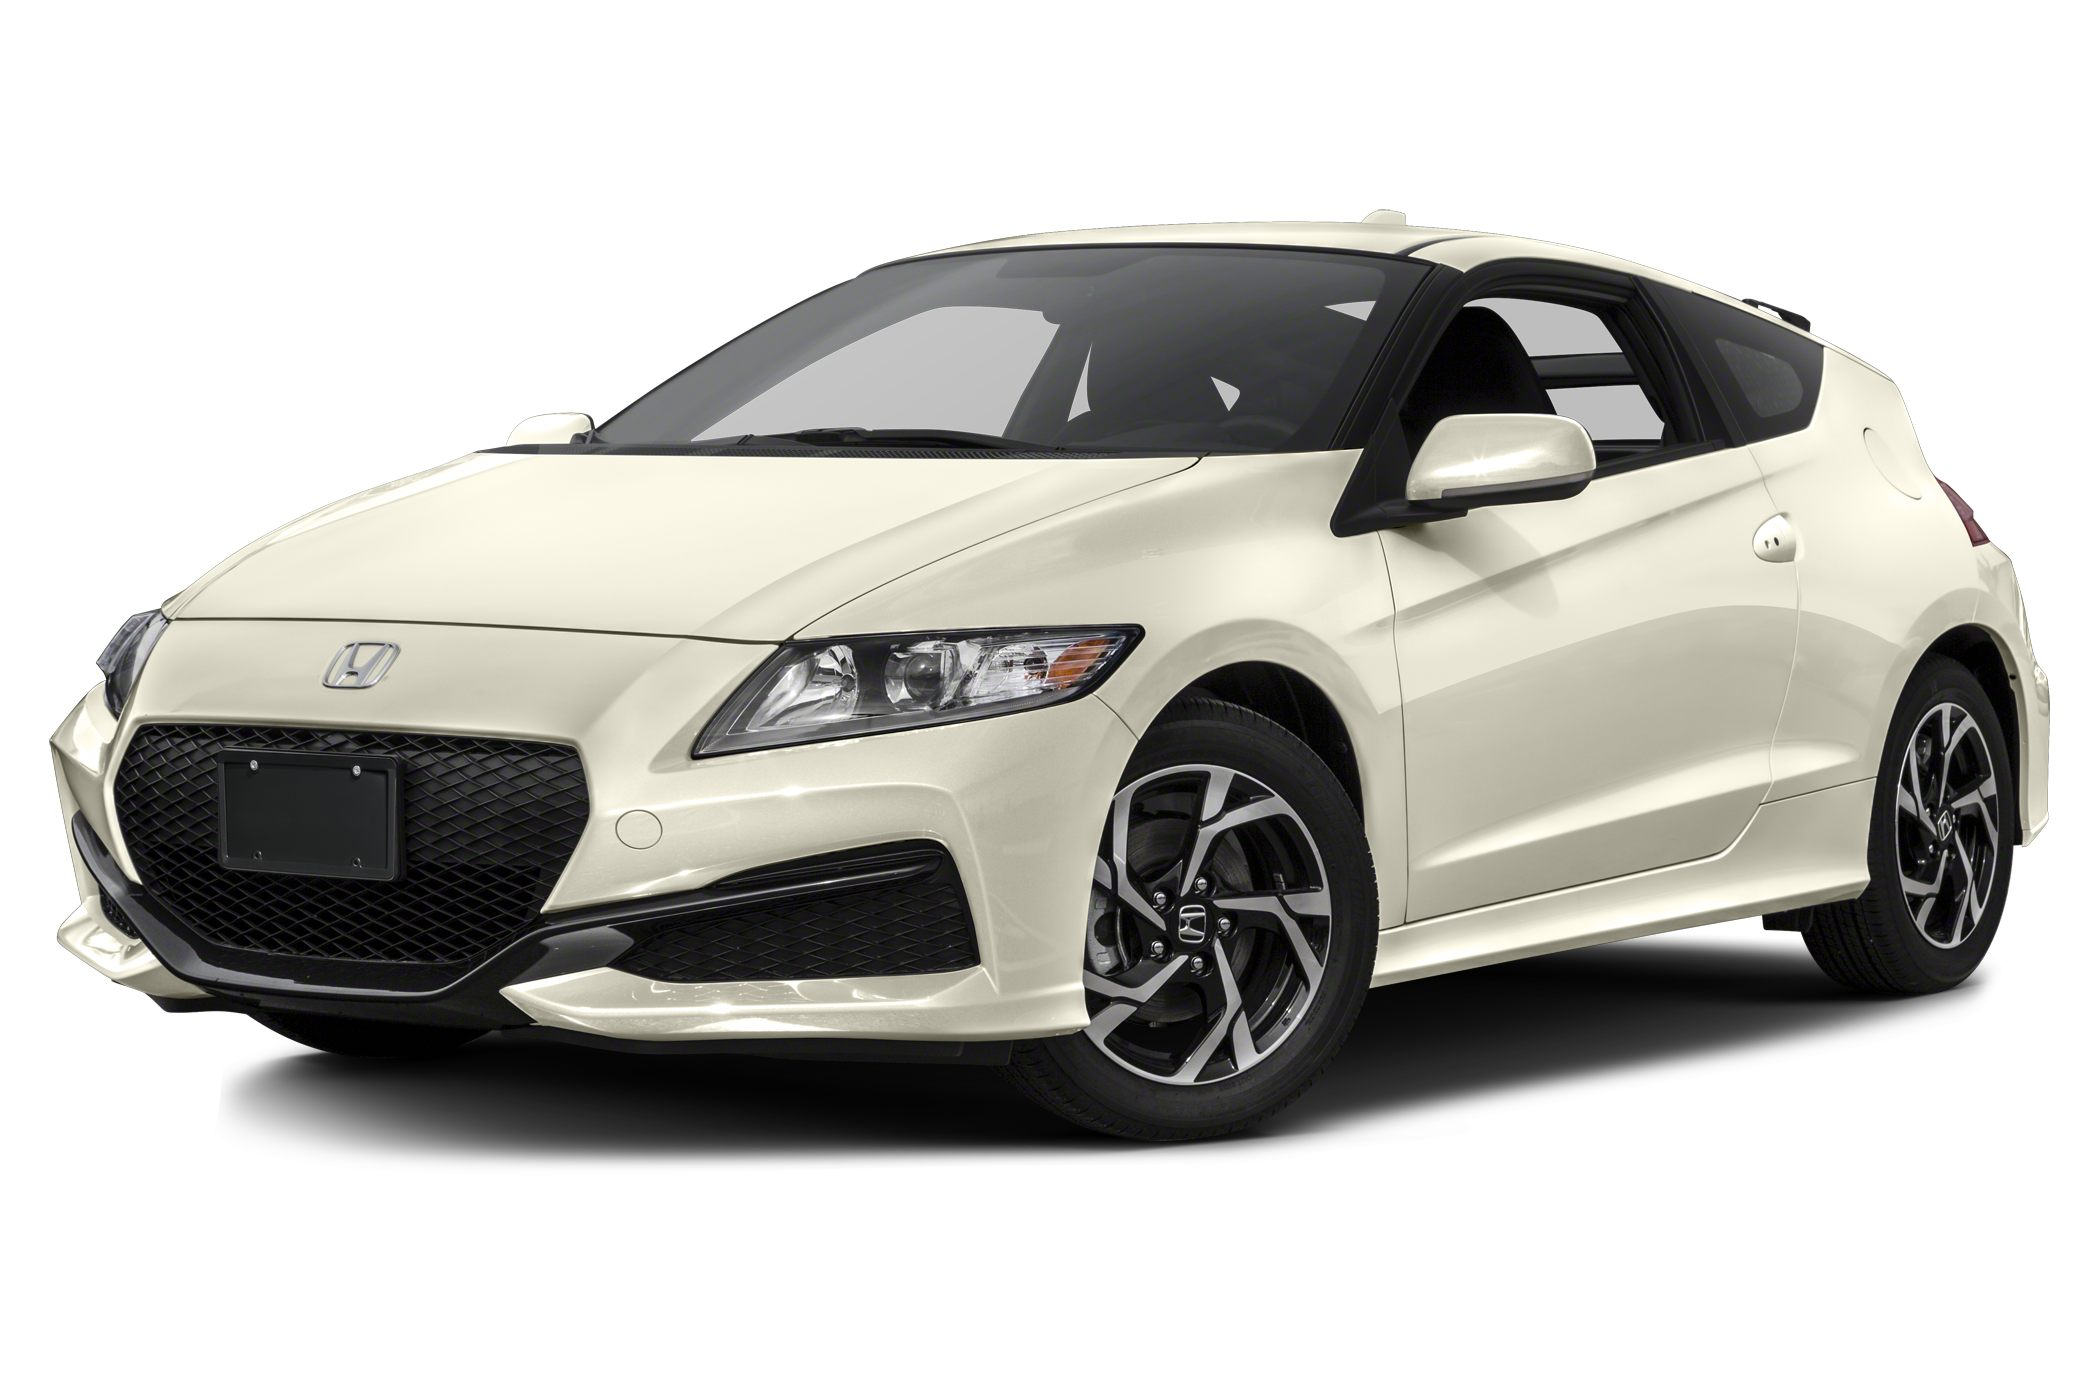 2016 honda cr z refresh japan photo gallery autoblog. Black Bedroom Furniture Sets. Home Design Ideas